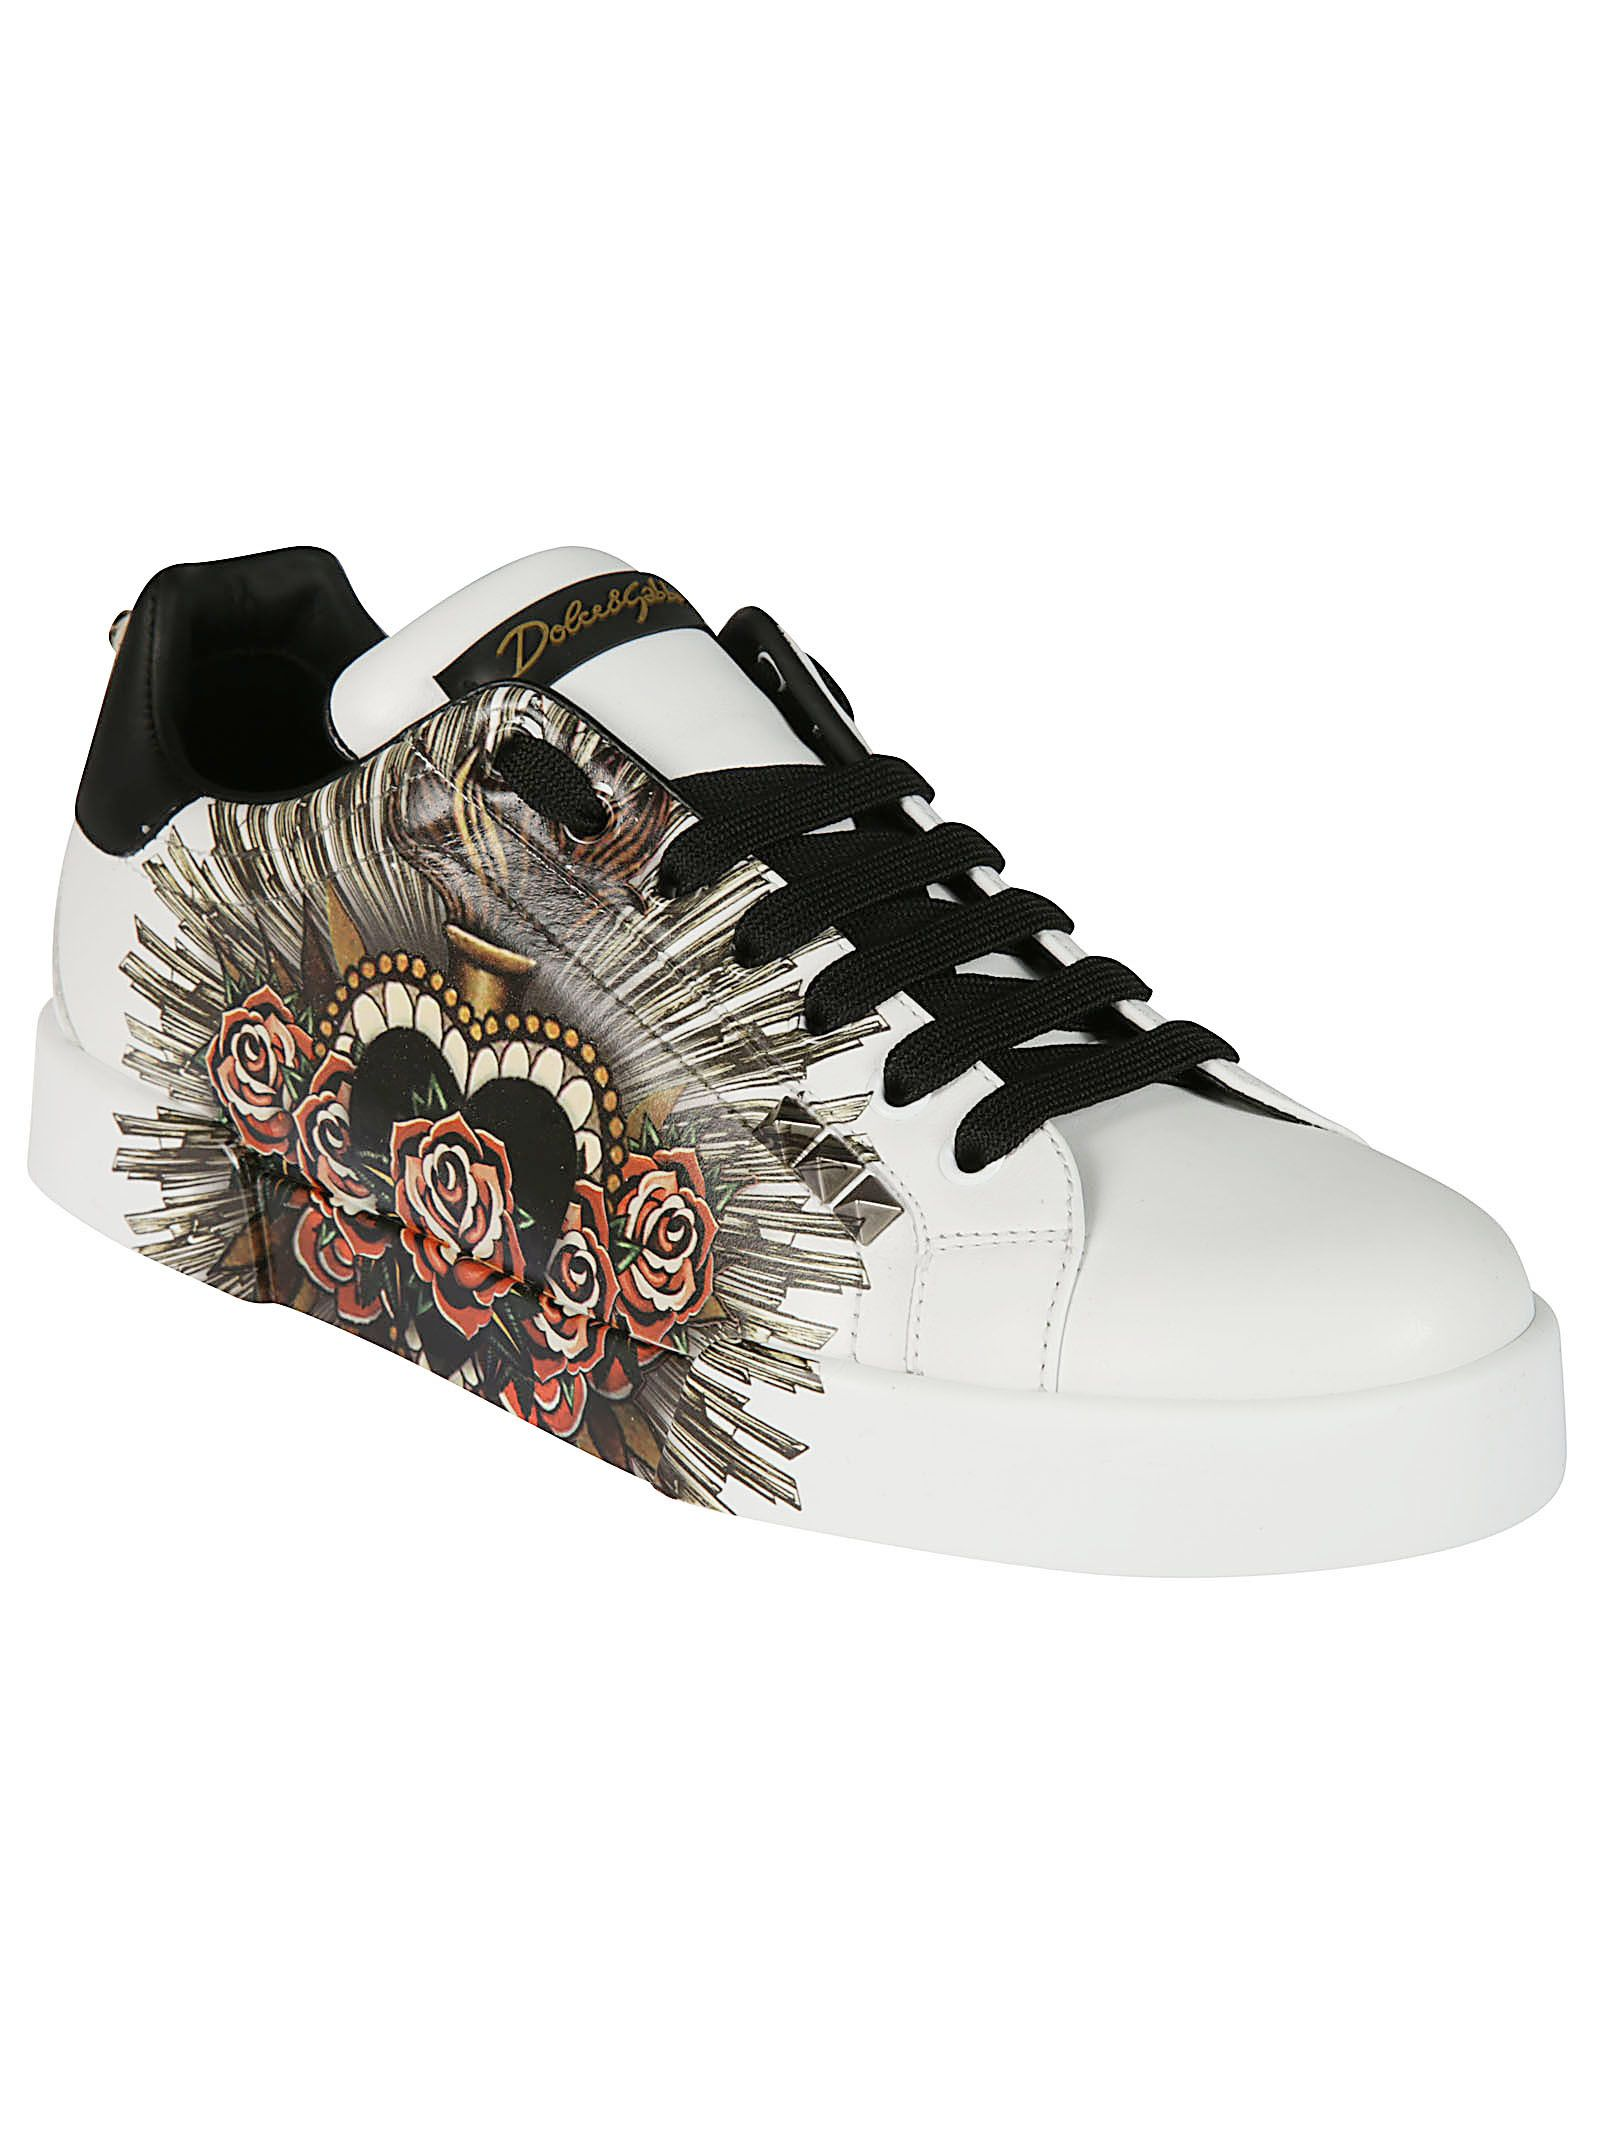 where to buy low price new styles online Dolce & Gabbana Sacred Heart Portofino sneakers free shipping best zhyLj4XYms